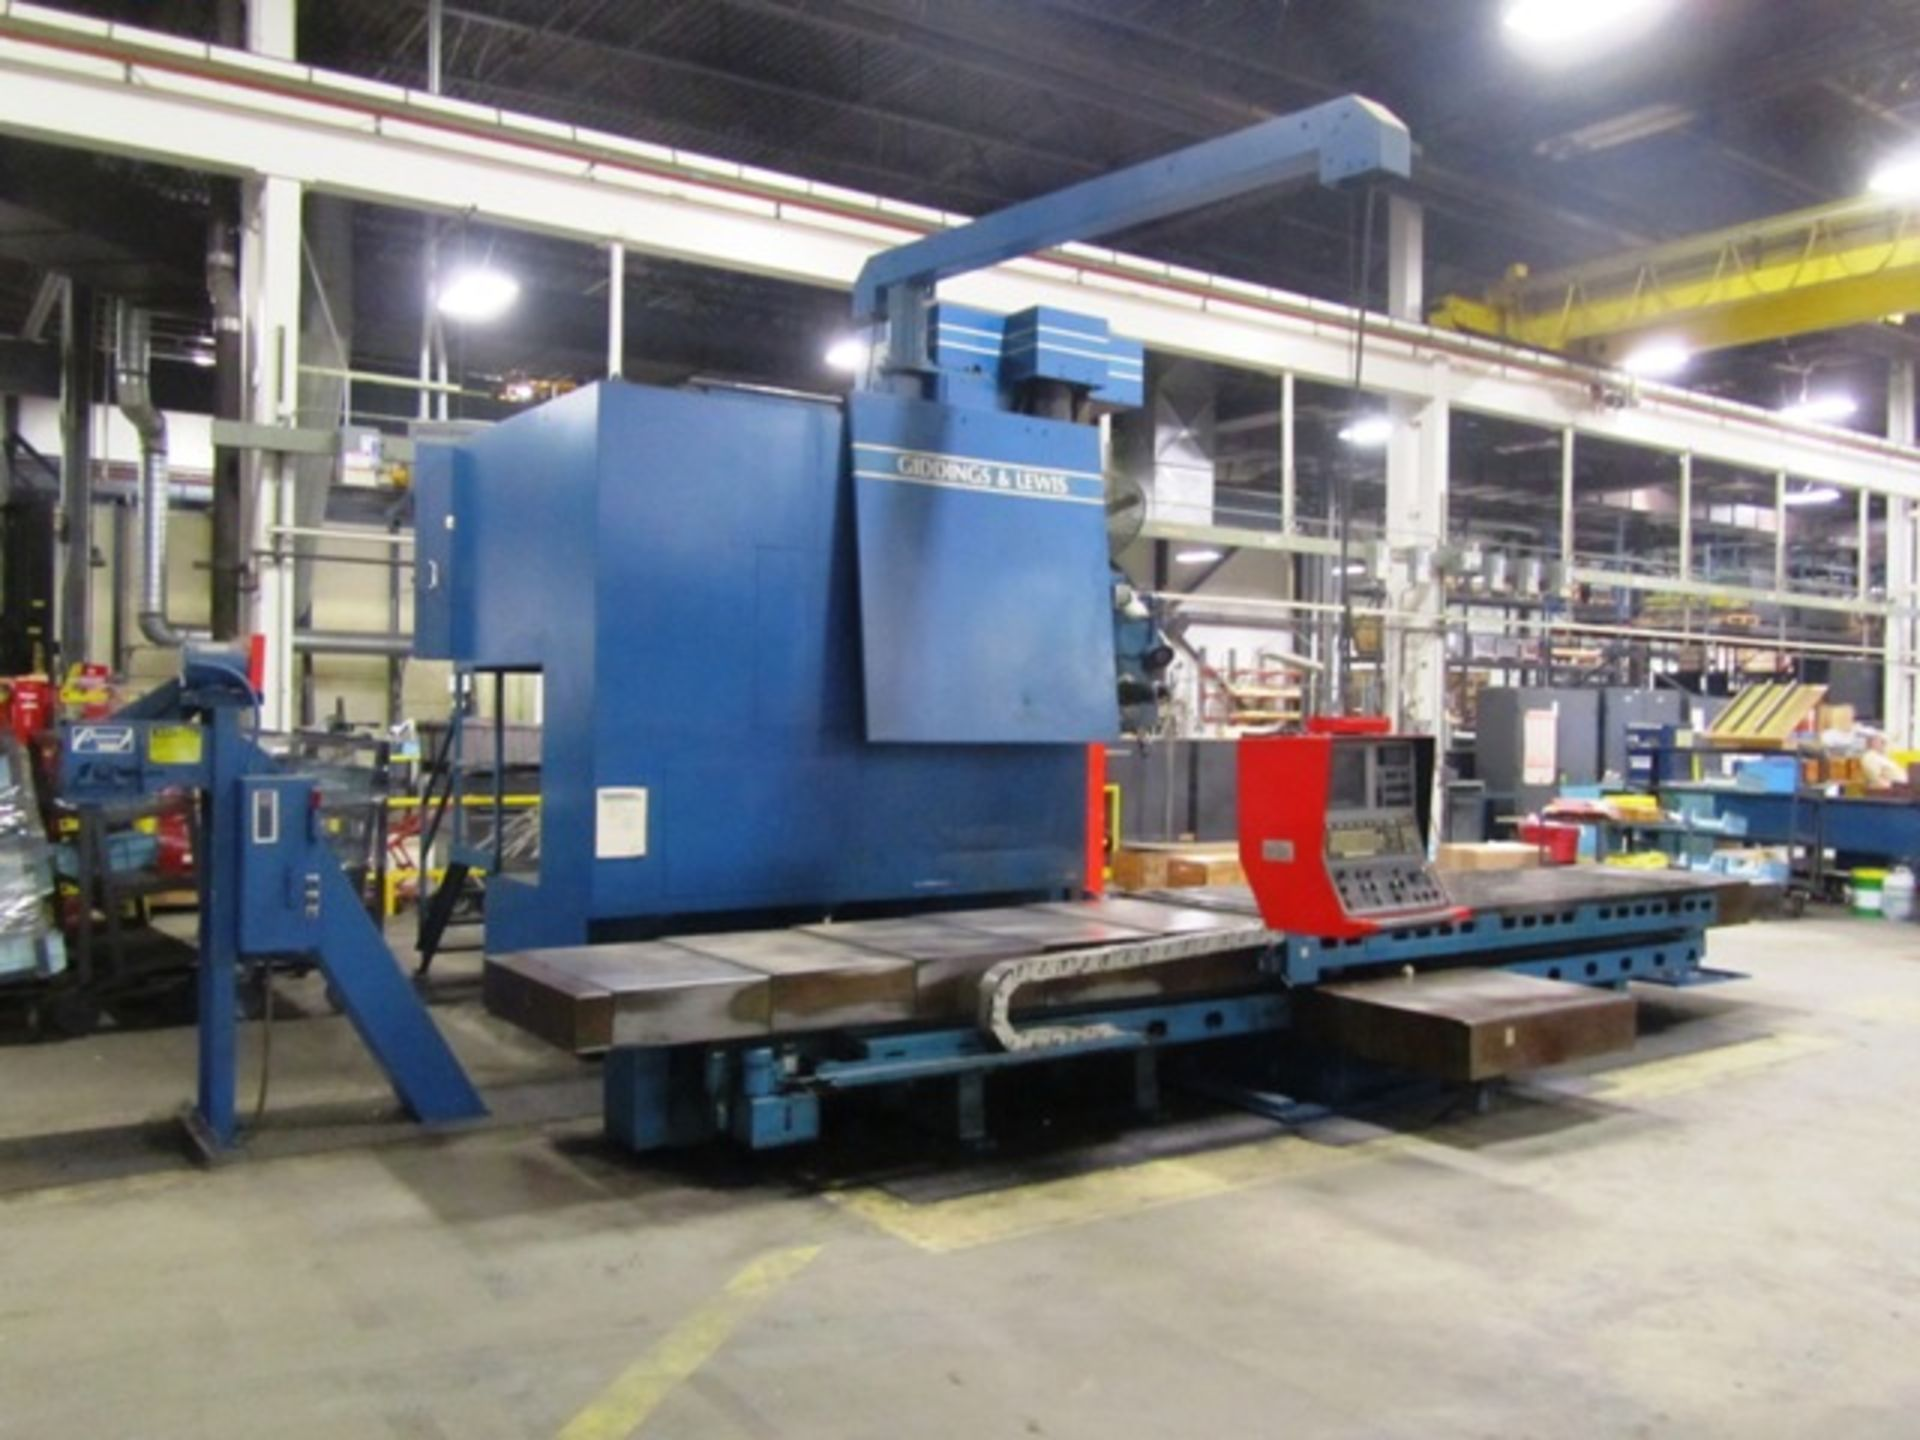 Giddings & Lewis Model 70-G5-T 5'' CNC Table Type Horizontal Boring Mill - Image 5 of 9